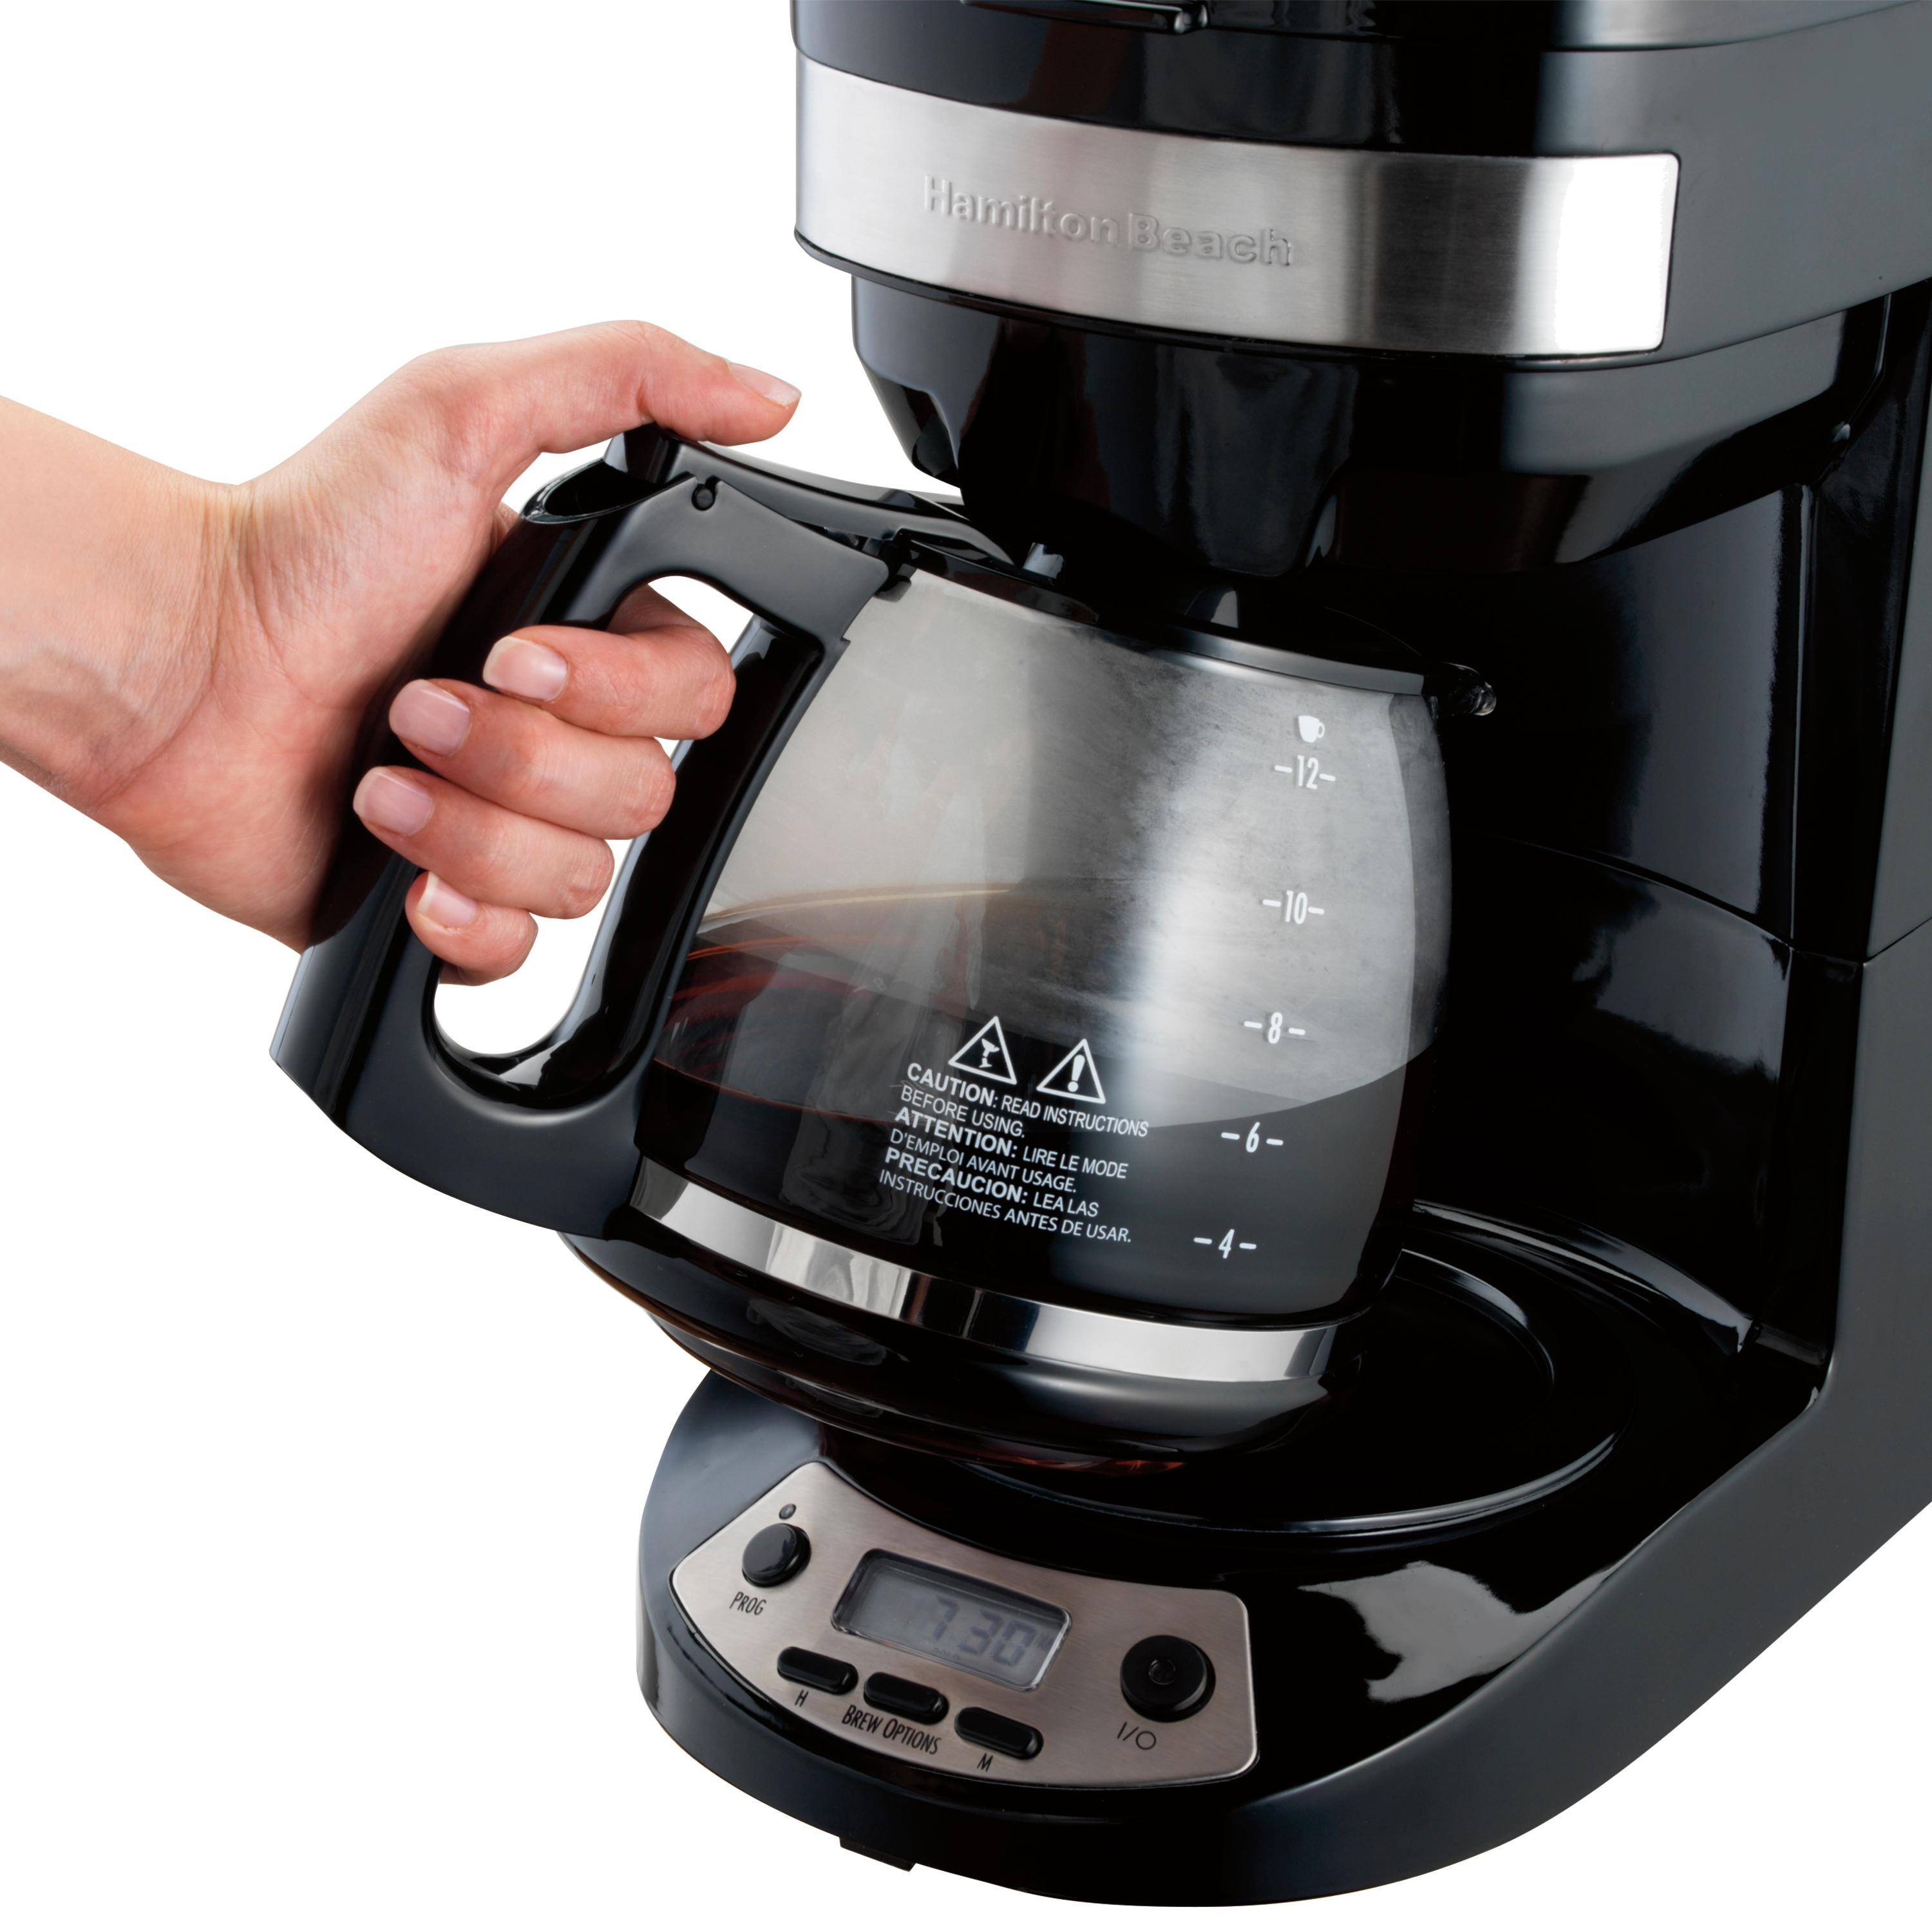 K Cup Coffee Maker Reviews 2012 : Amazon.com: Hamilton Beach 46299 Programmable Coffee Maker ...